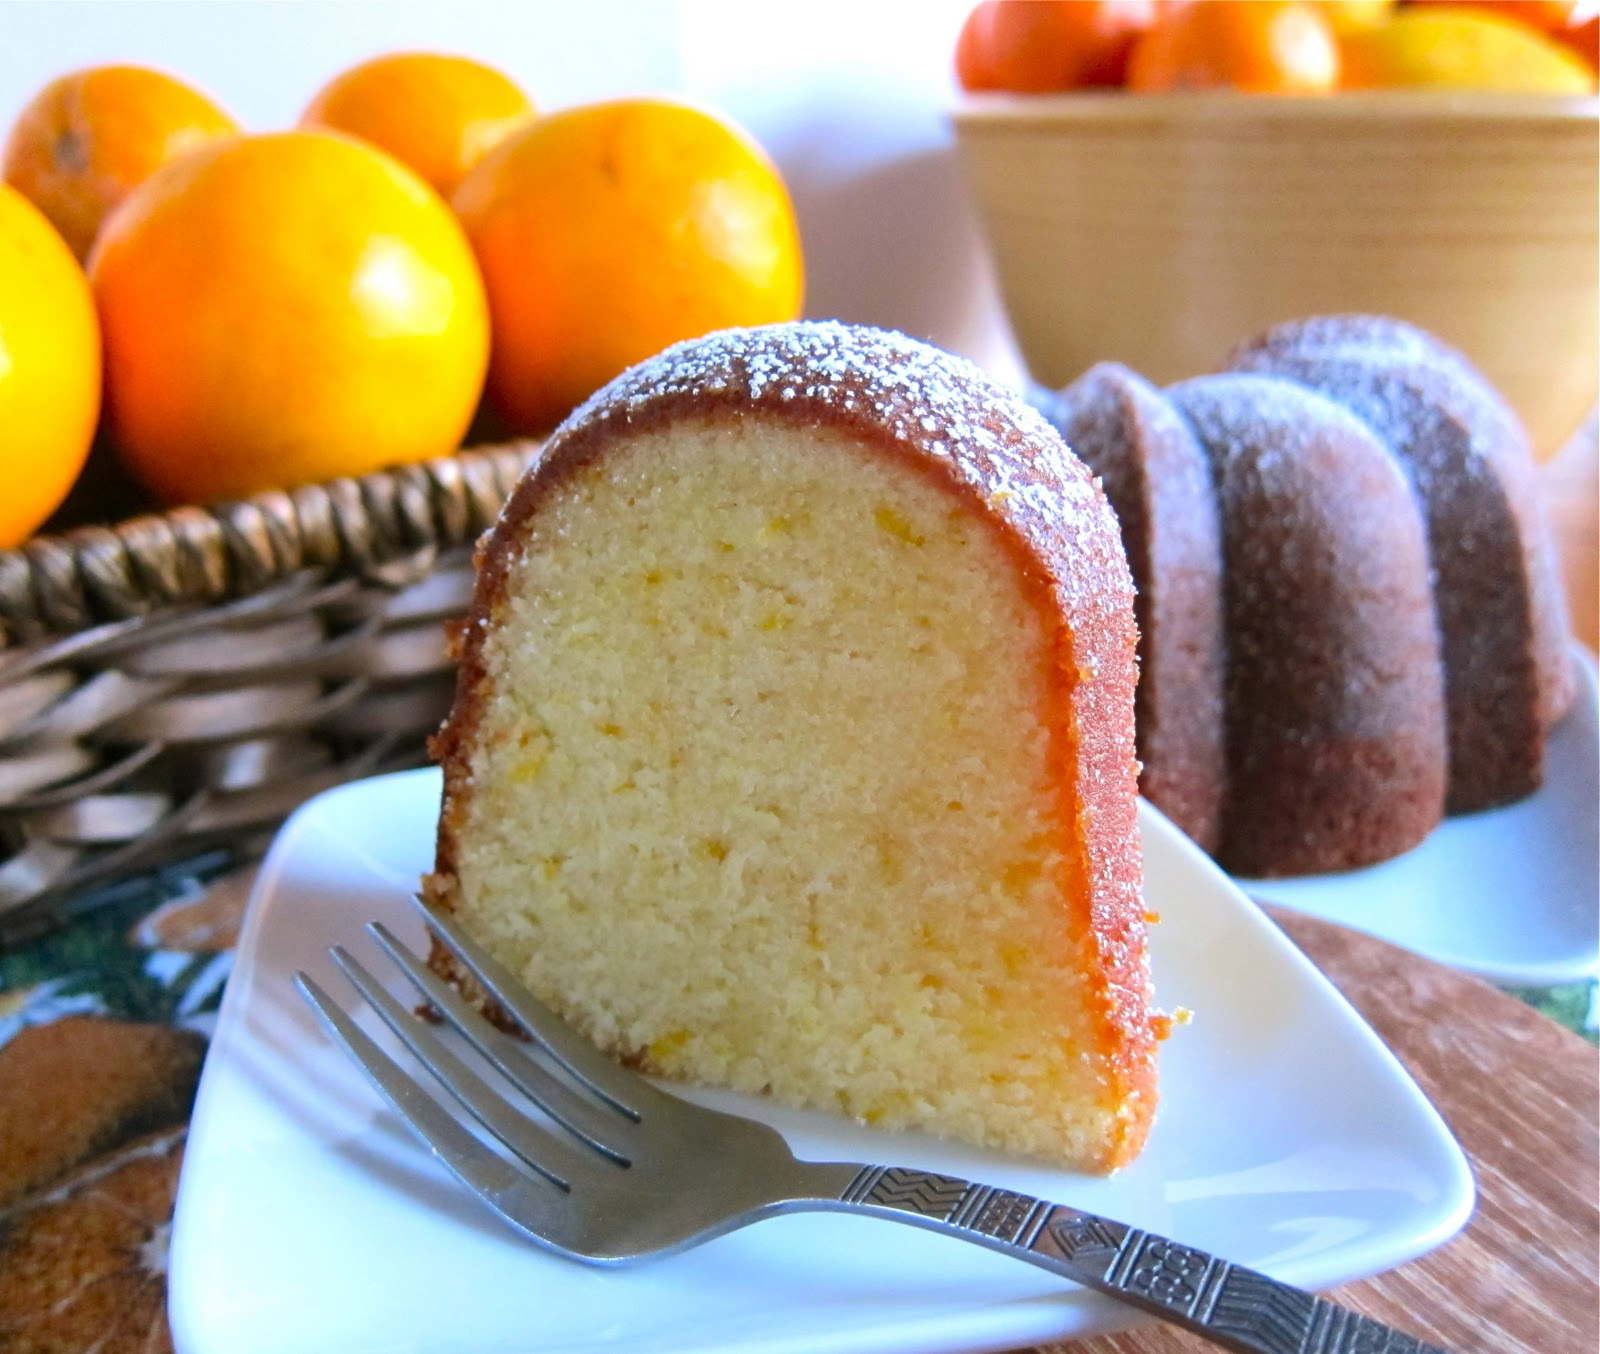 Arctic Garden Studio: Orange Olive Oil Cake